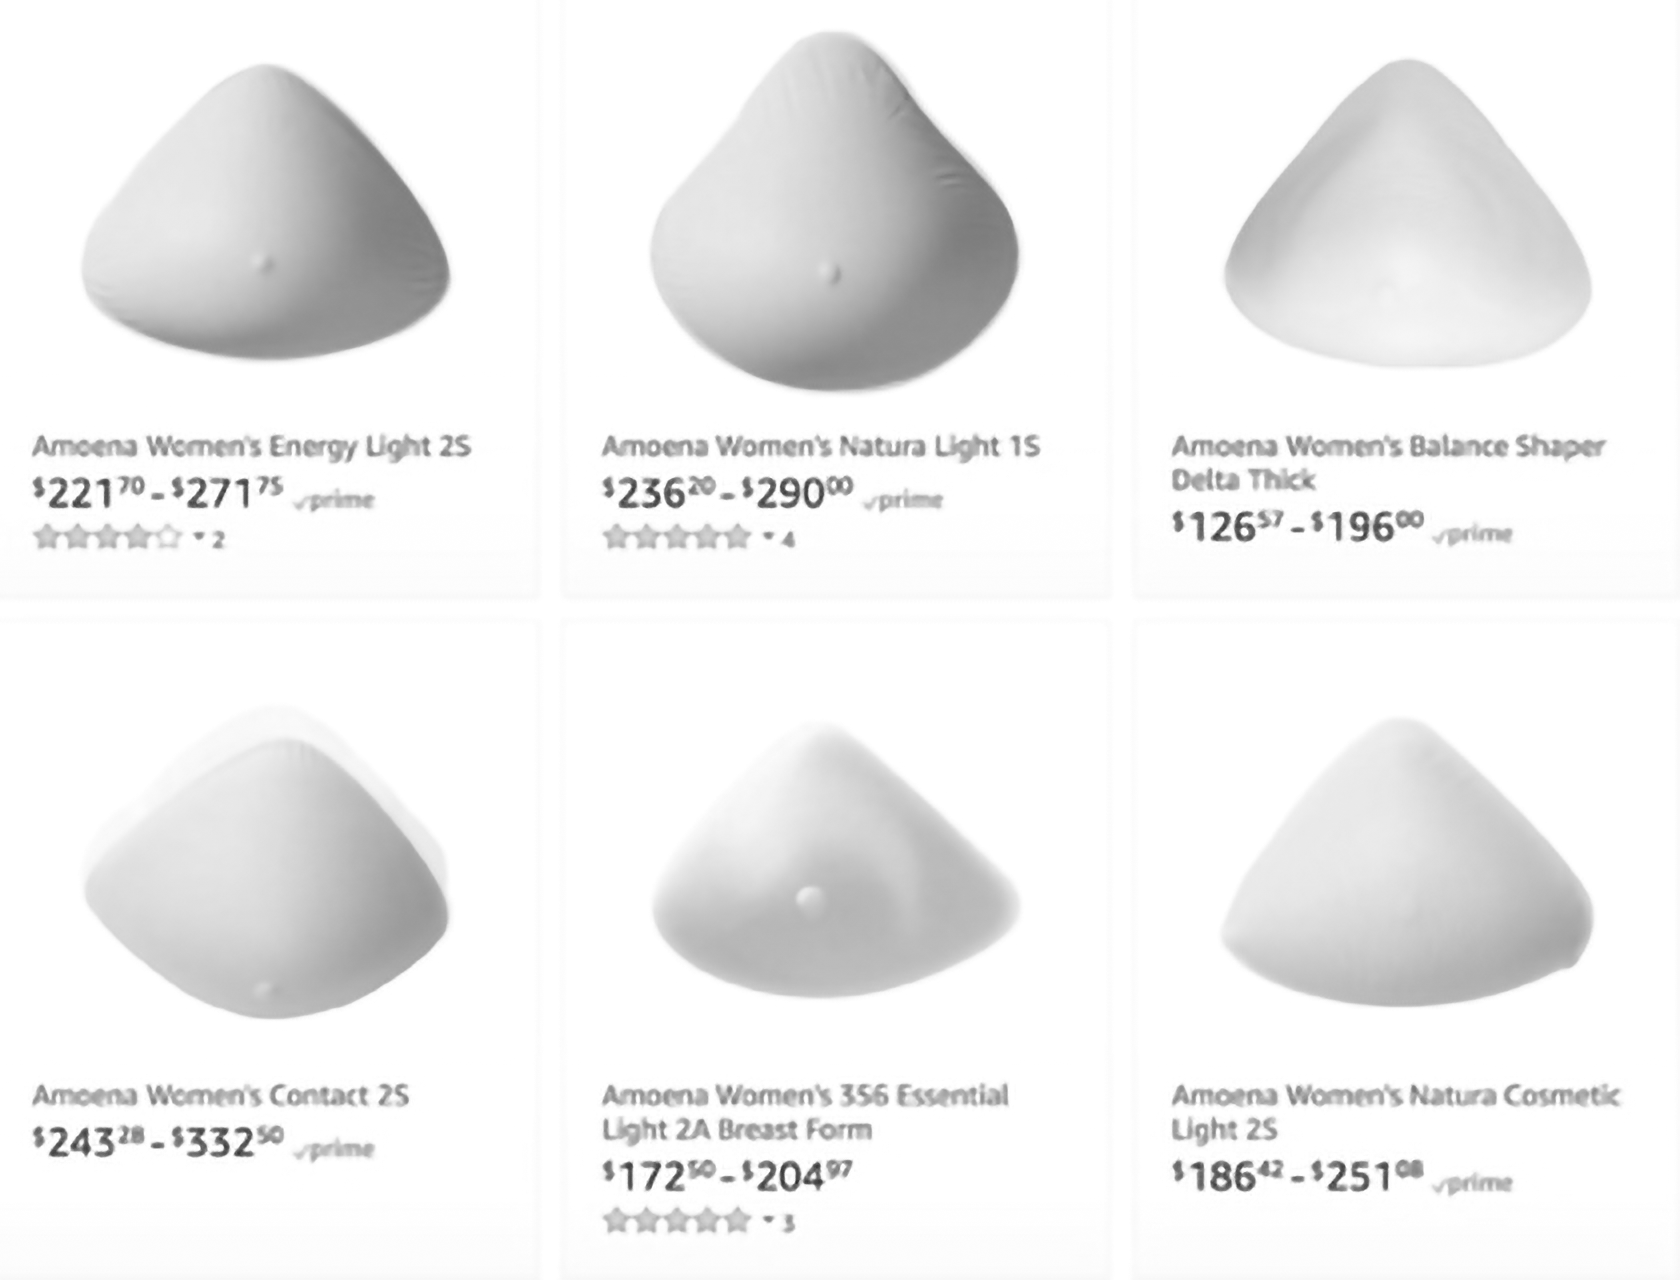 Fig. 1 - Amoena breast forms on Amazon.com